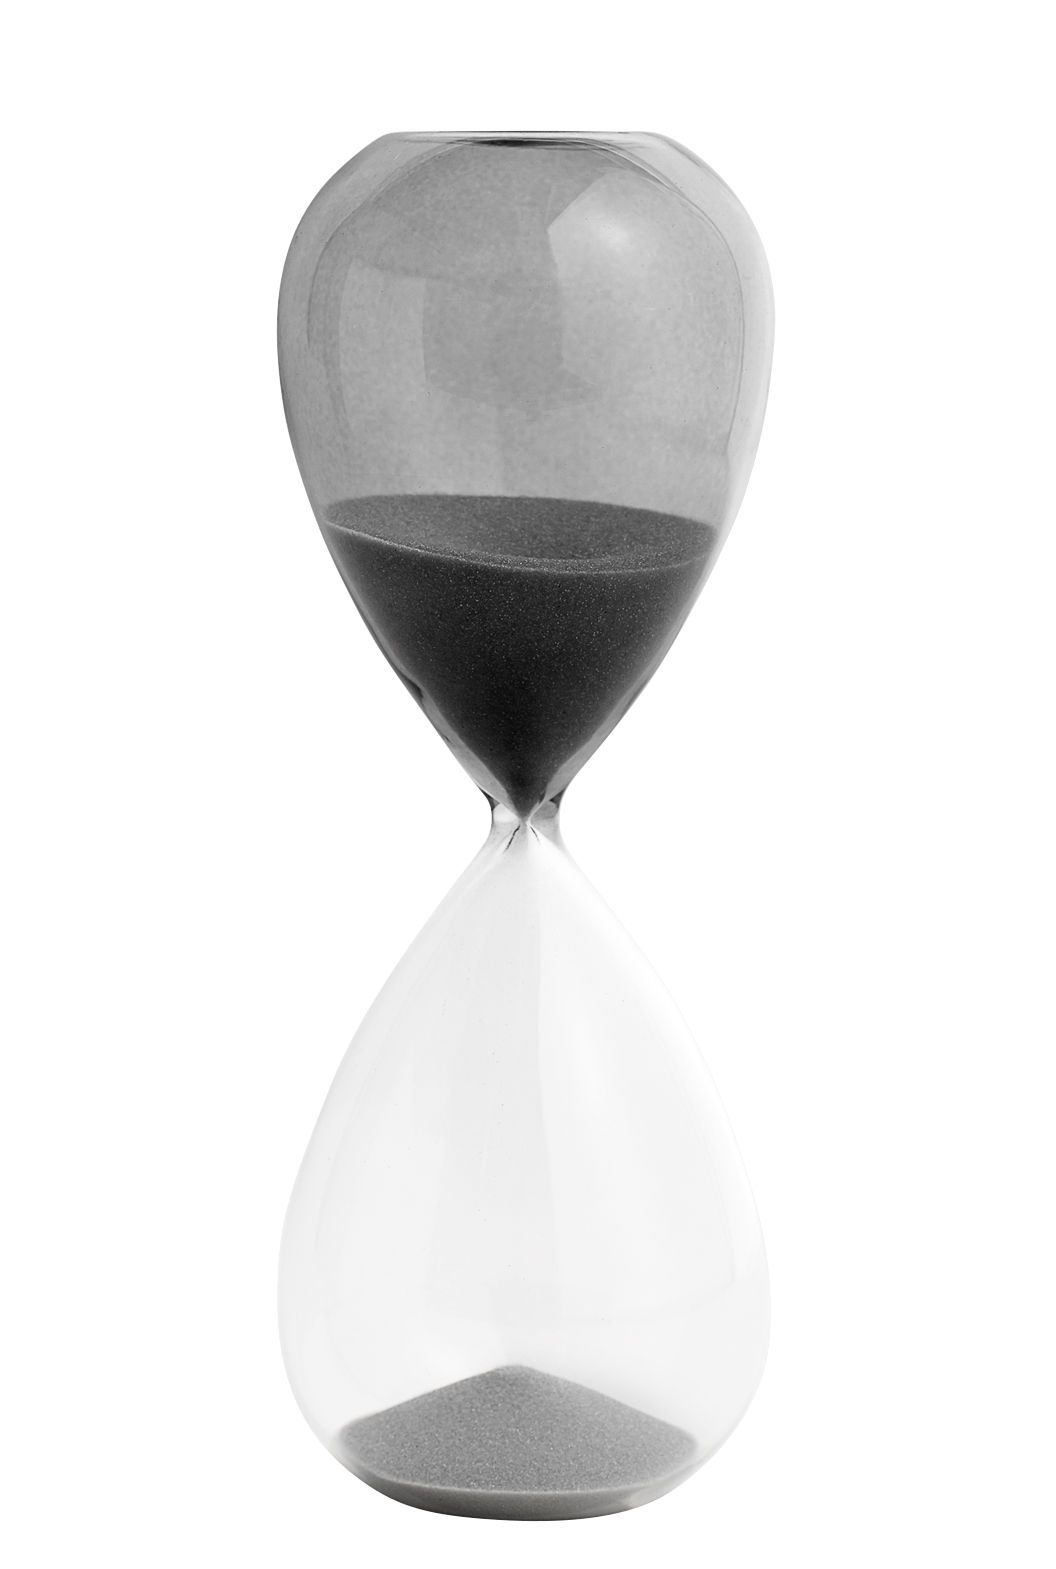 Kitchenware - Kitchen Equipment - Time Large Egg timer - / 30 minutes - H 19.5 cm by Hay - Grey / Transparent - Glass, Sand